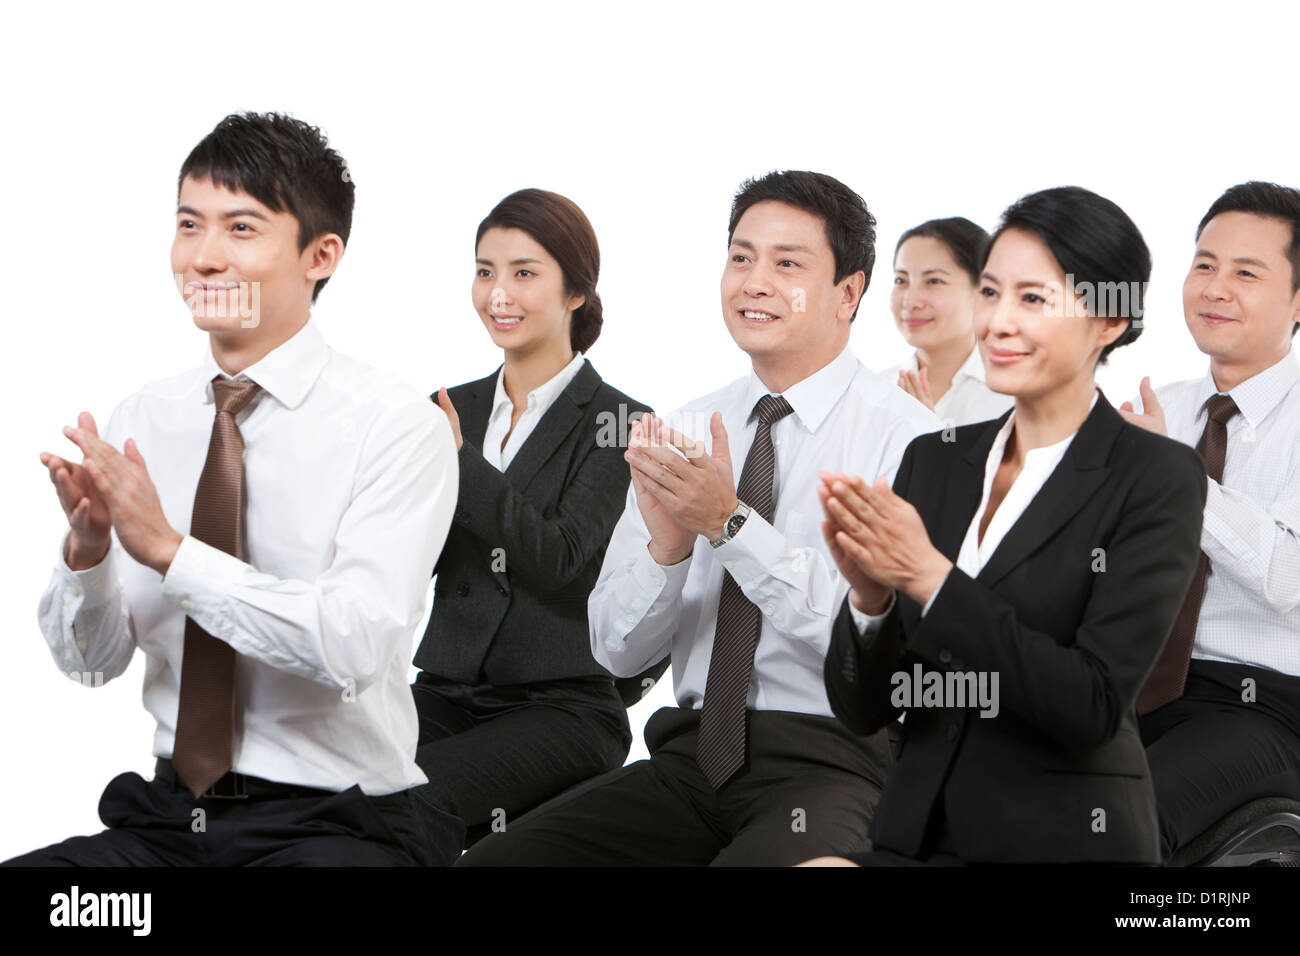 Cheerful business persons clapping in a meeting - Stock Image